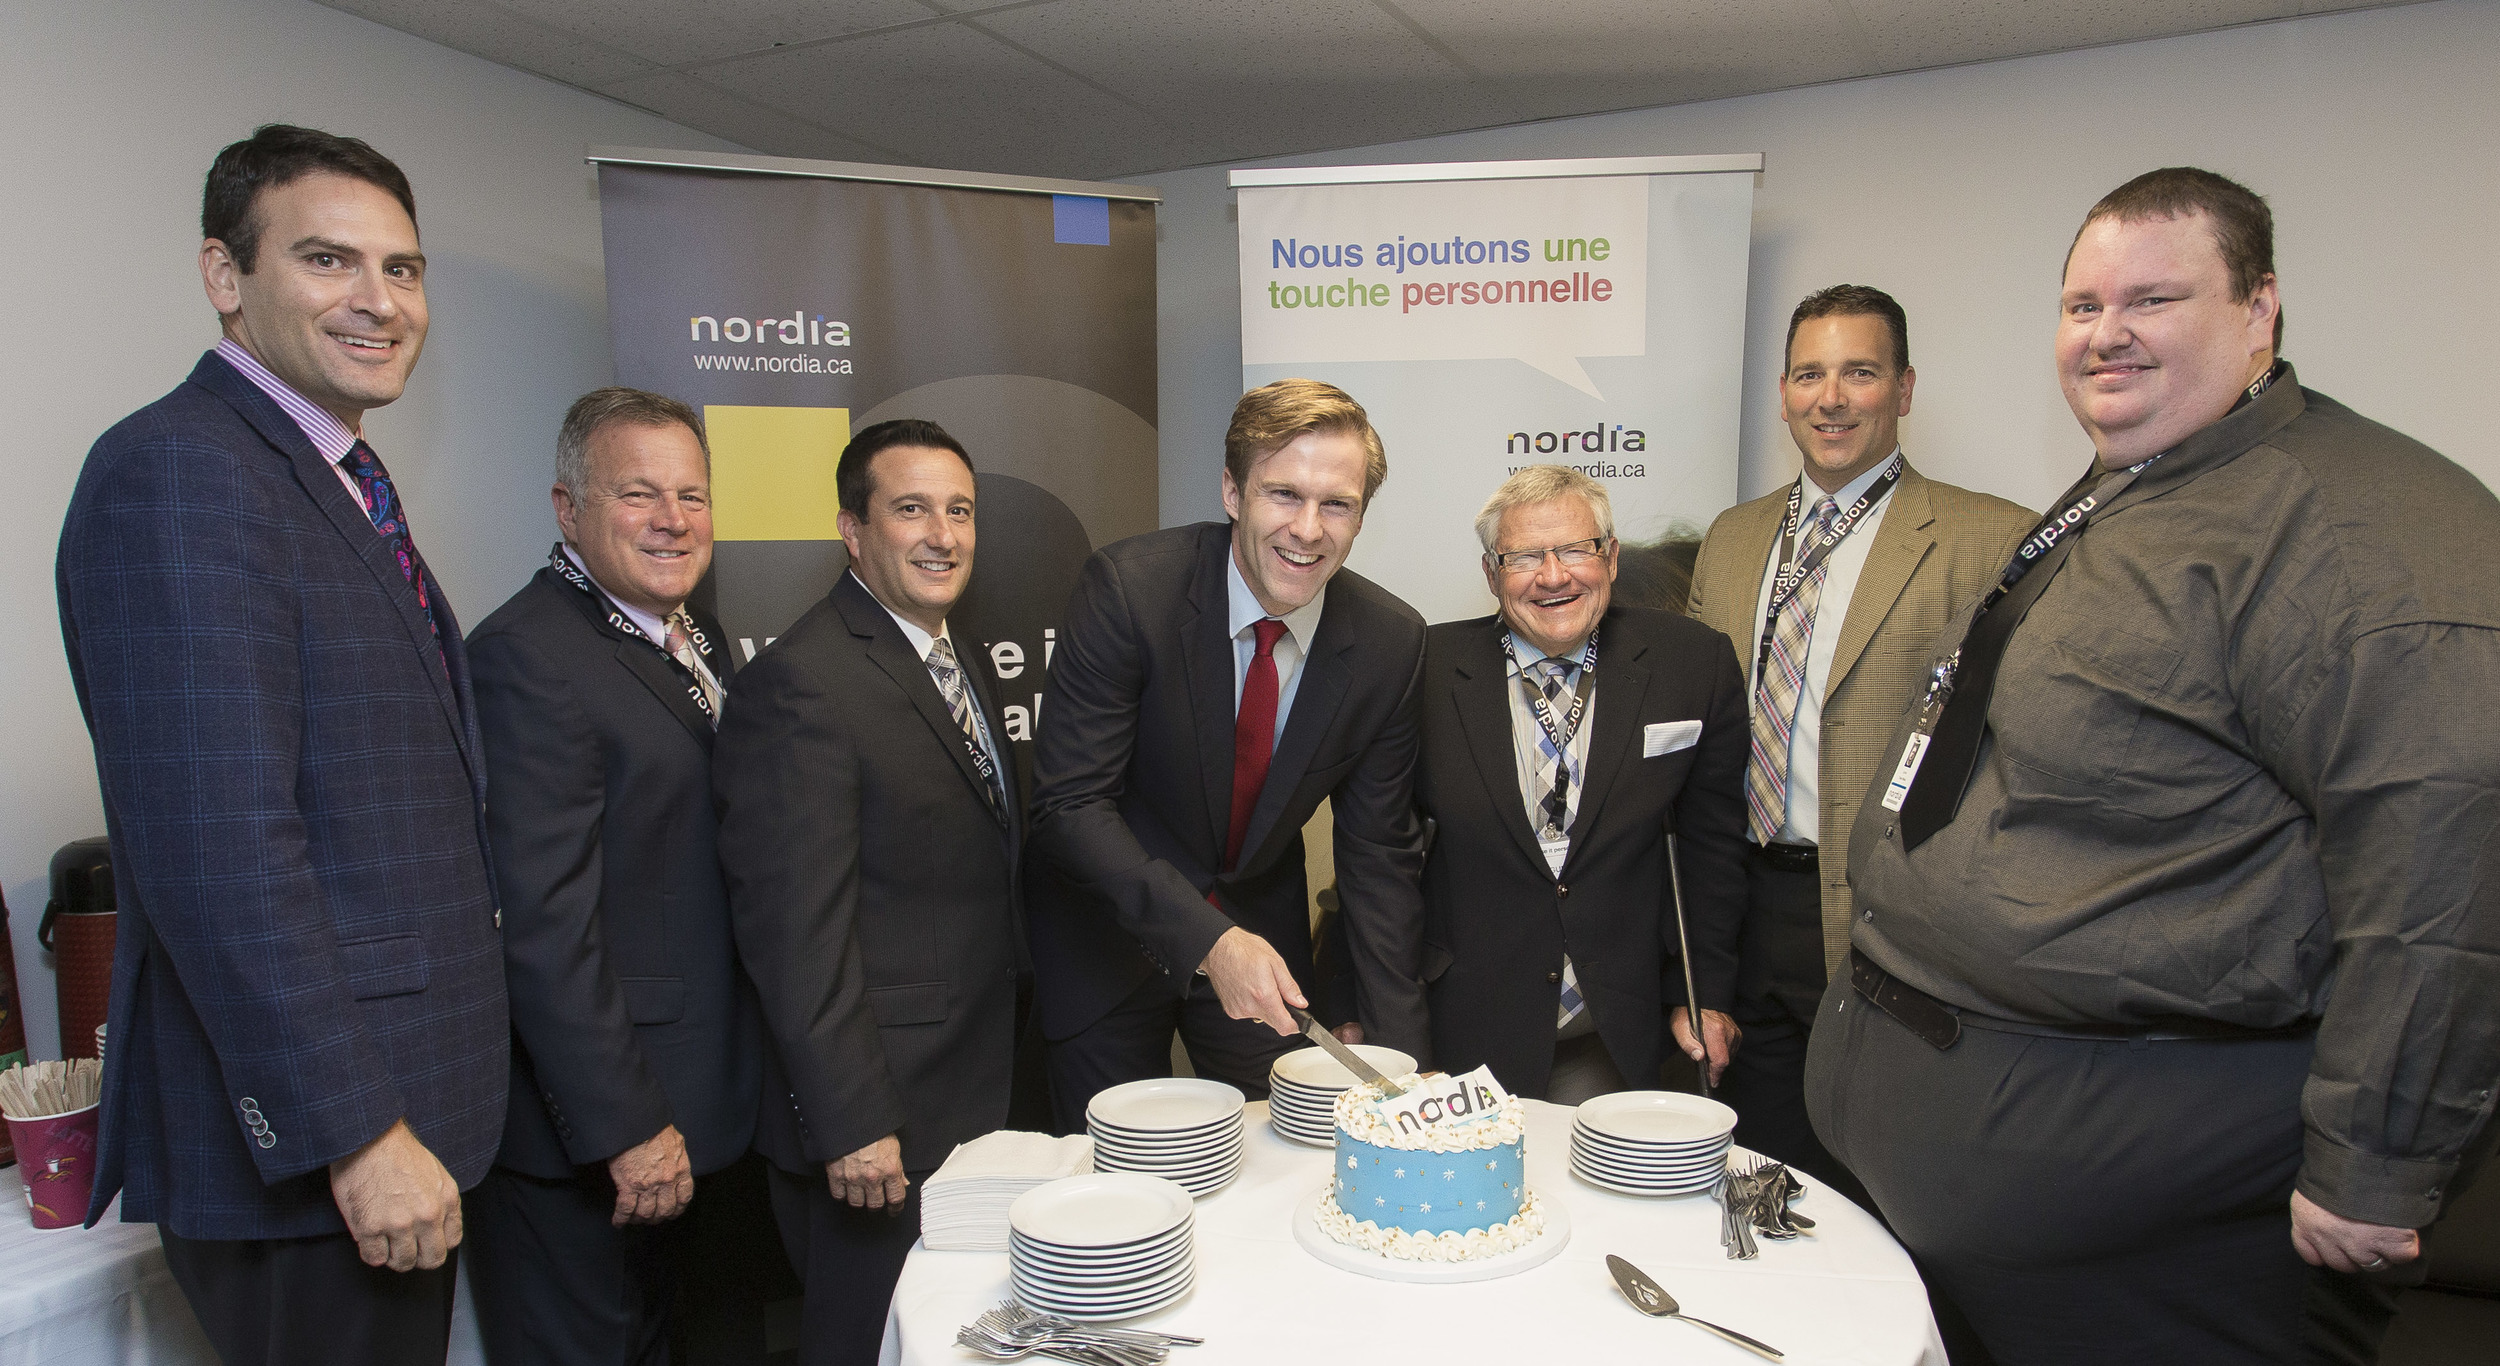 (From left to right): Mayor Norton, Minister Doucet, John DiNardo (President, Nordia), Premier Gallant, Minister Doherty, Steve Milbury (ONB), Todd Miller (Site Director, Saint John)